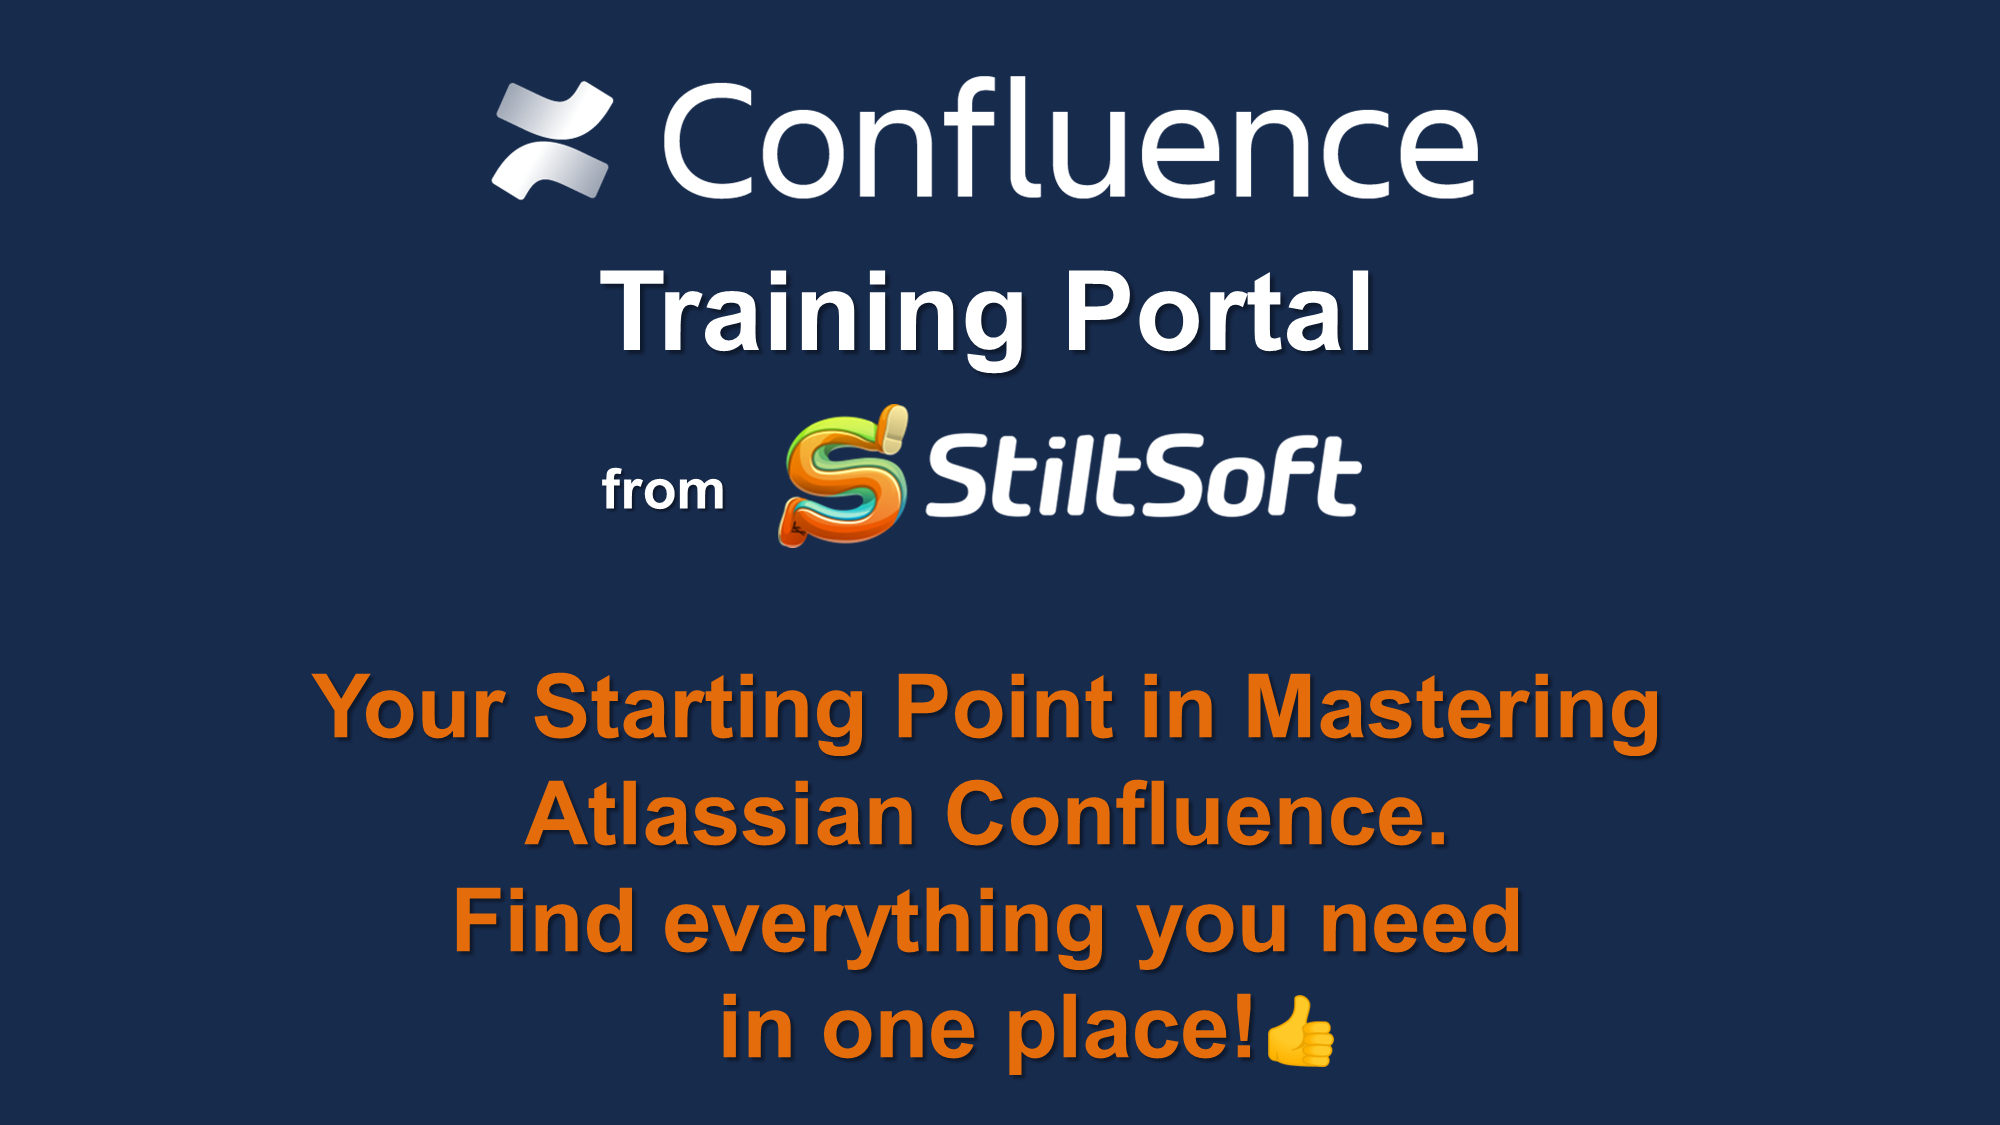 Confluence Training Portal